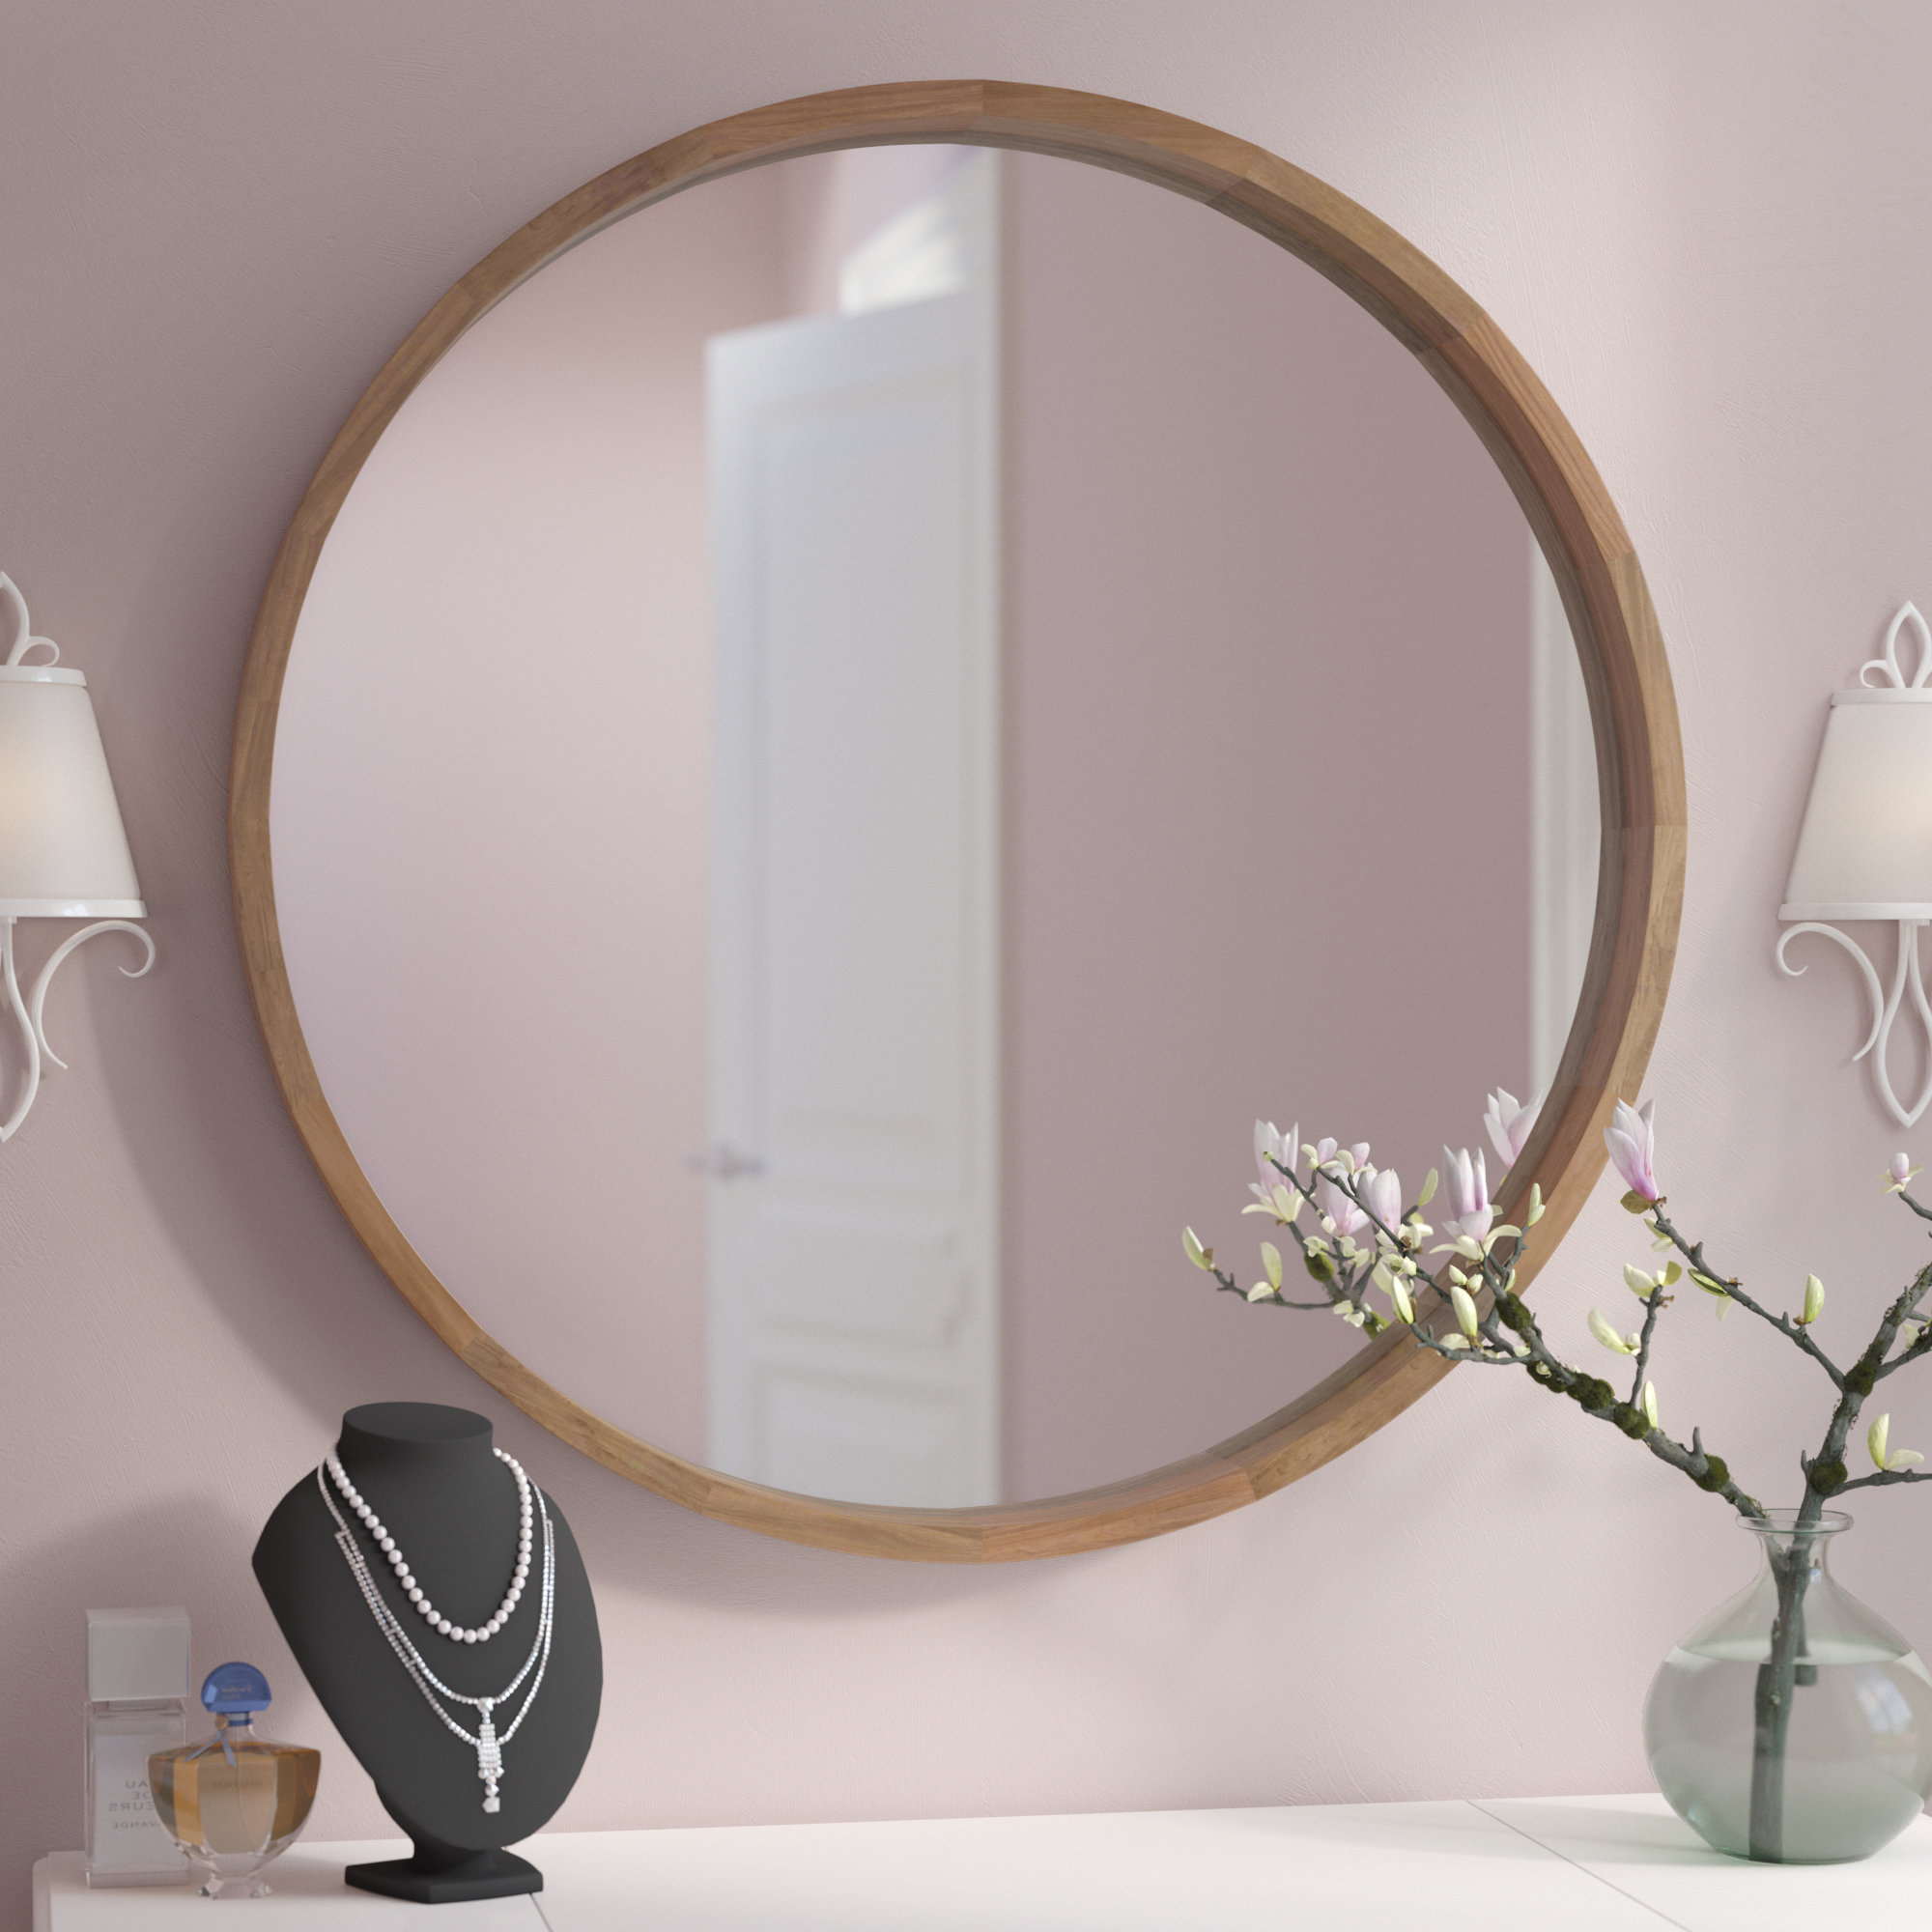 Kentwood Round Wall Mirrors Within Most Current Round Hanging Wall Mirror (View 13 of 20)